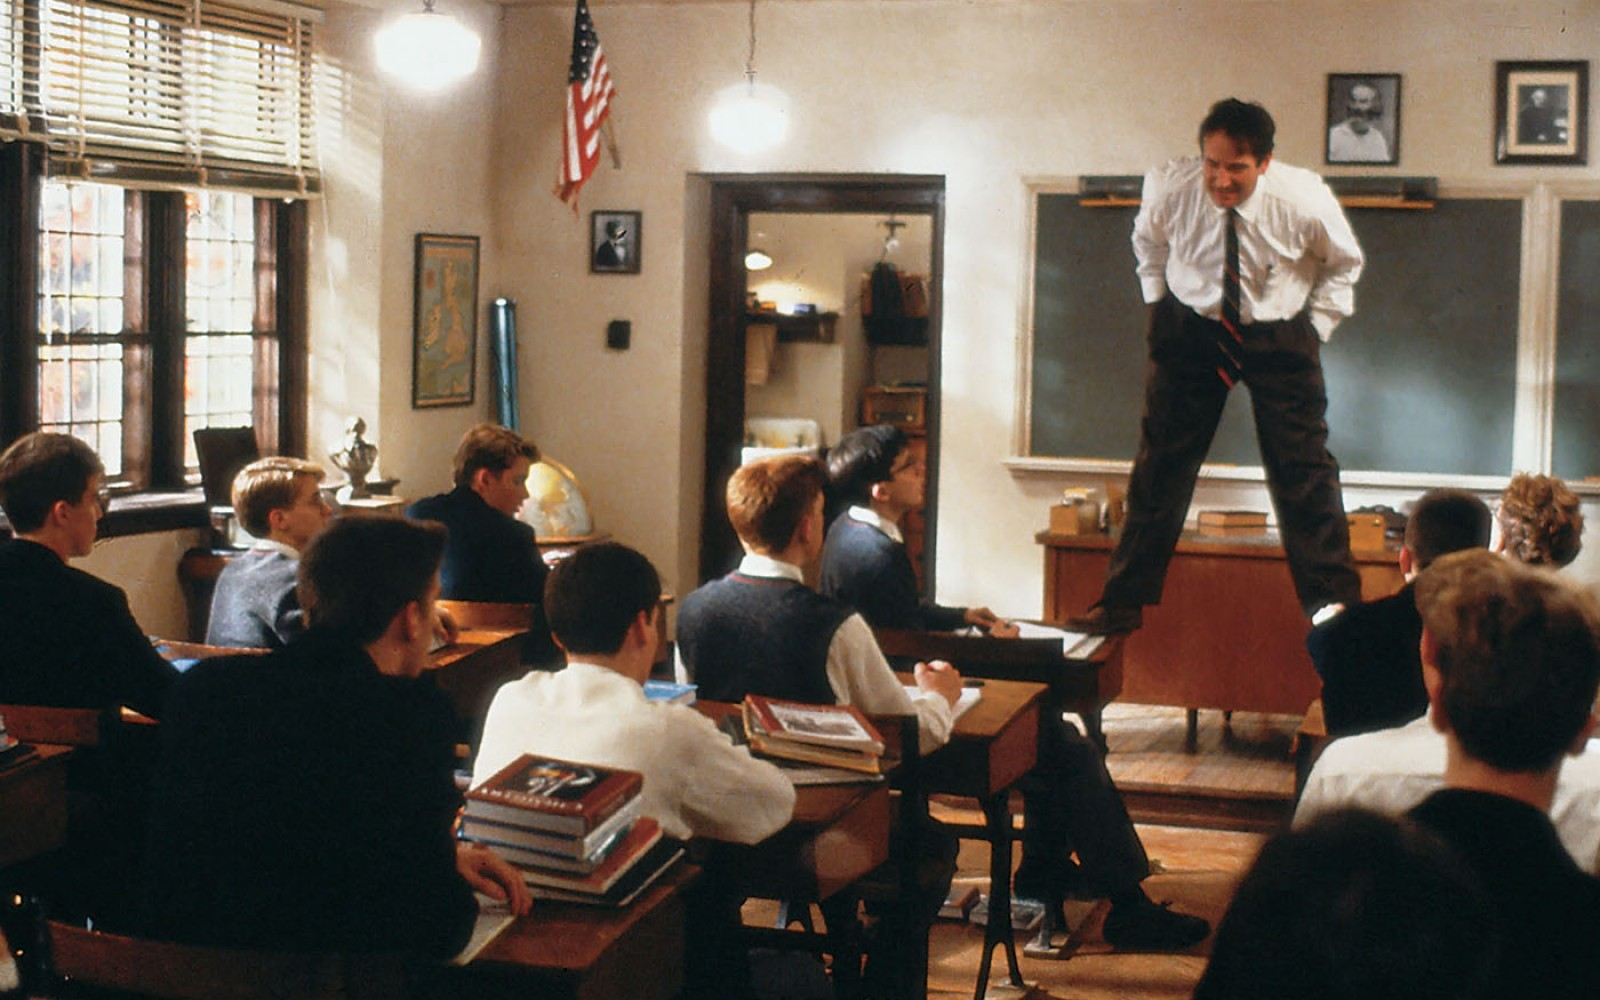 'O Captain! My Captain!': 16 Quotes From 'Dead Poets Society' That'll Inspire You To Carpe Diem